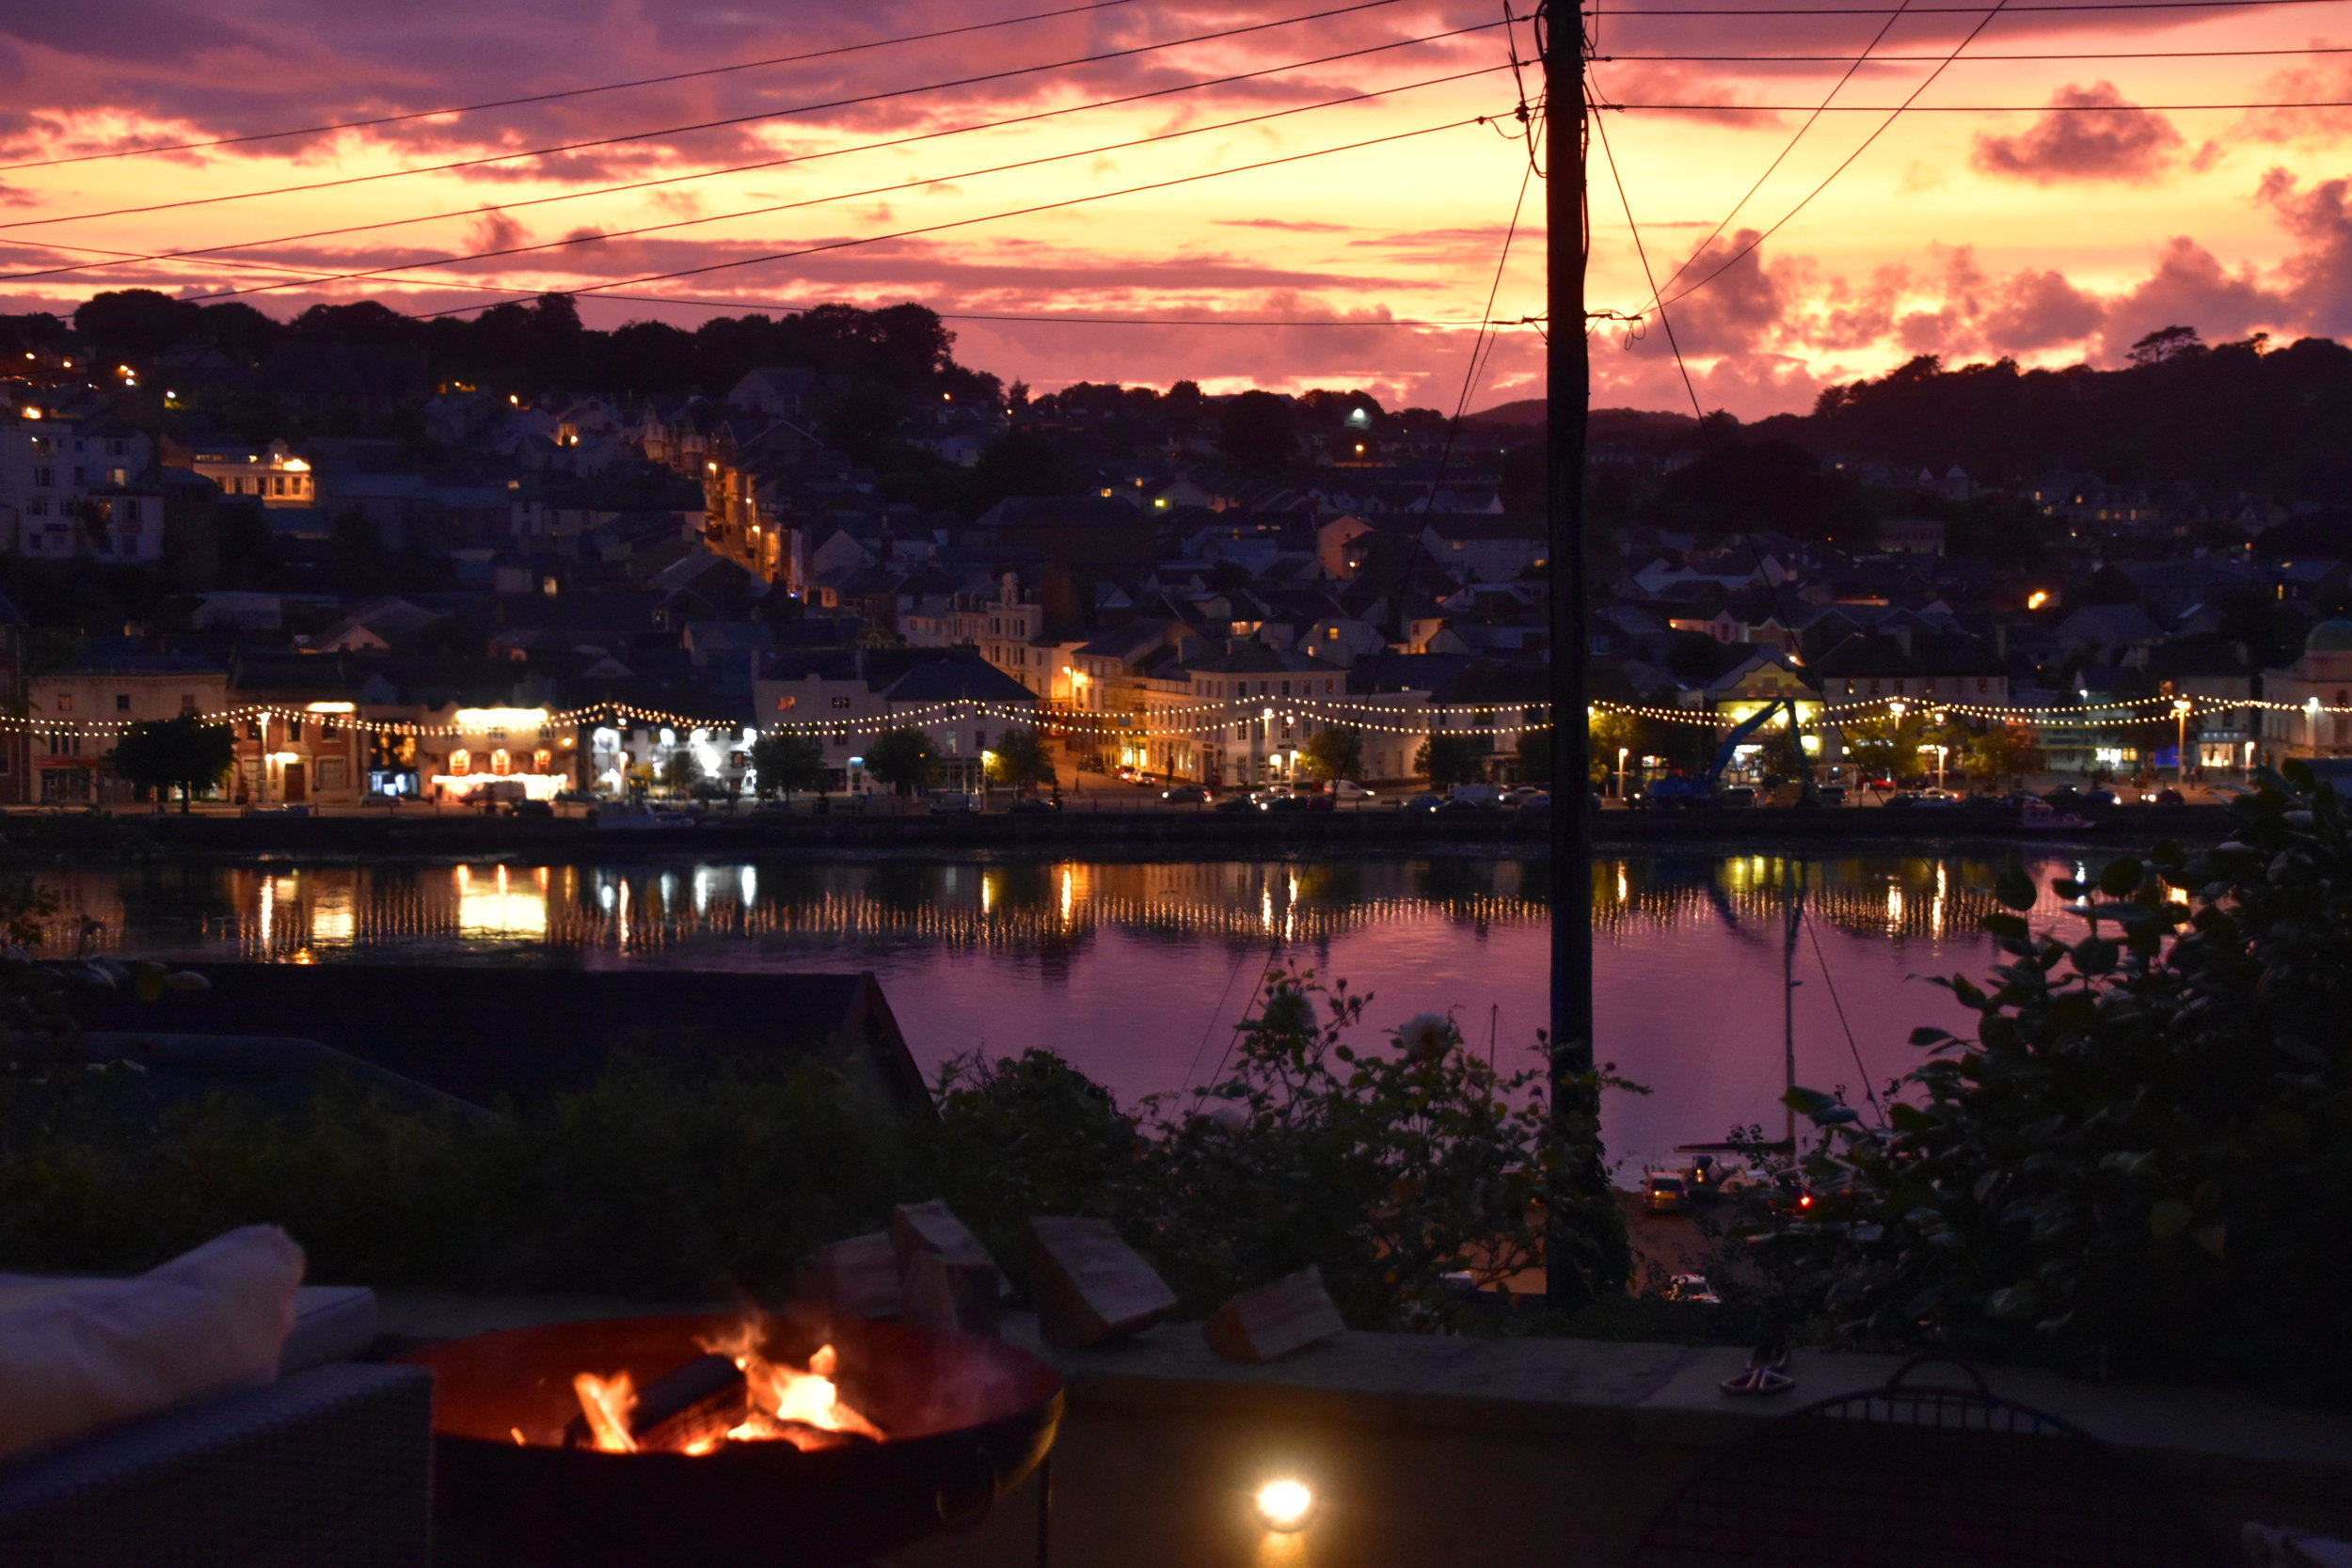 Evening view over Bideford from the terrace